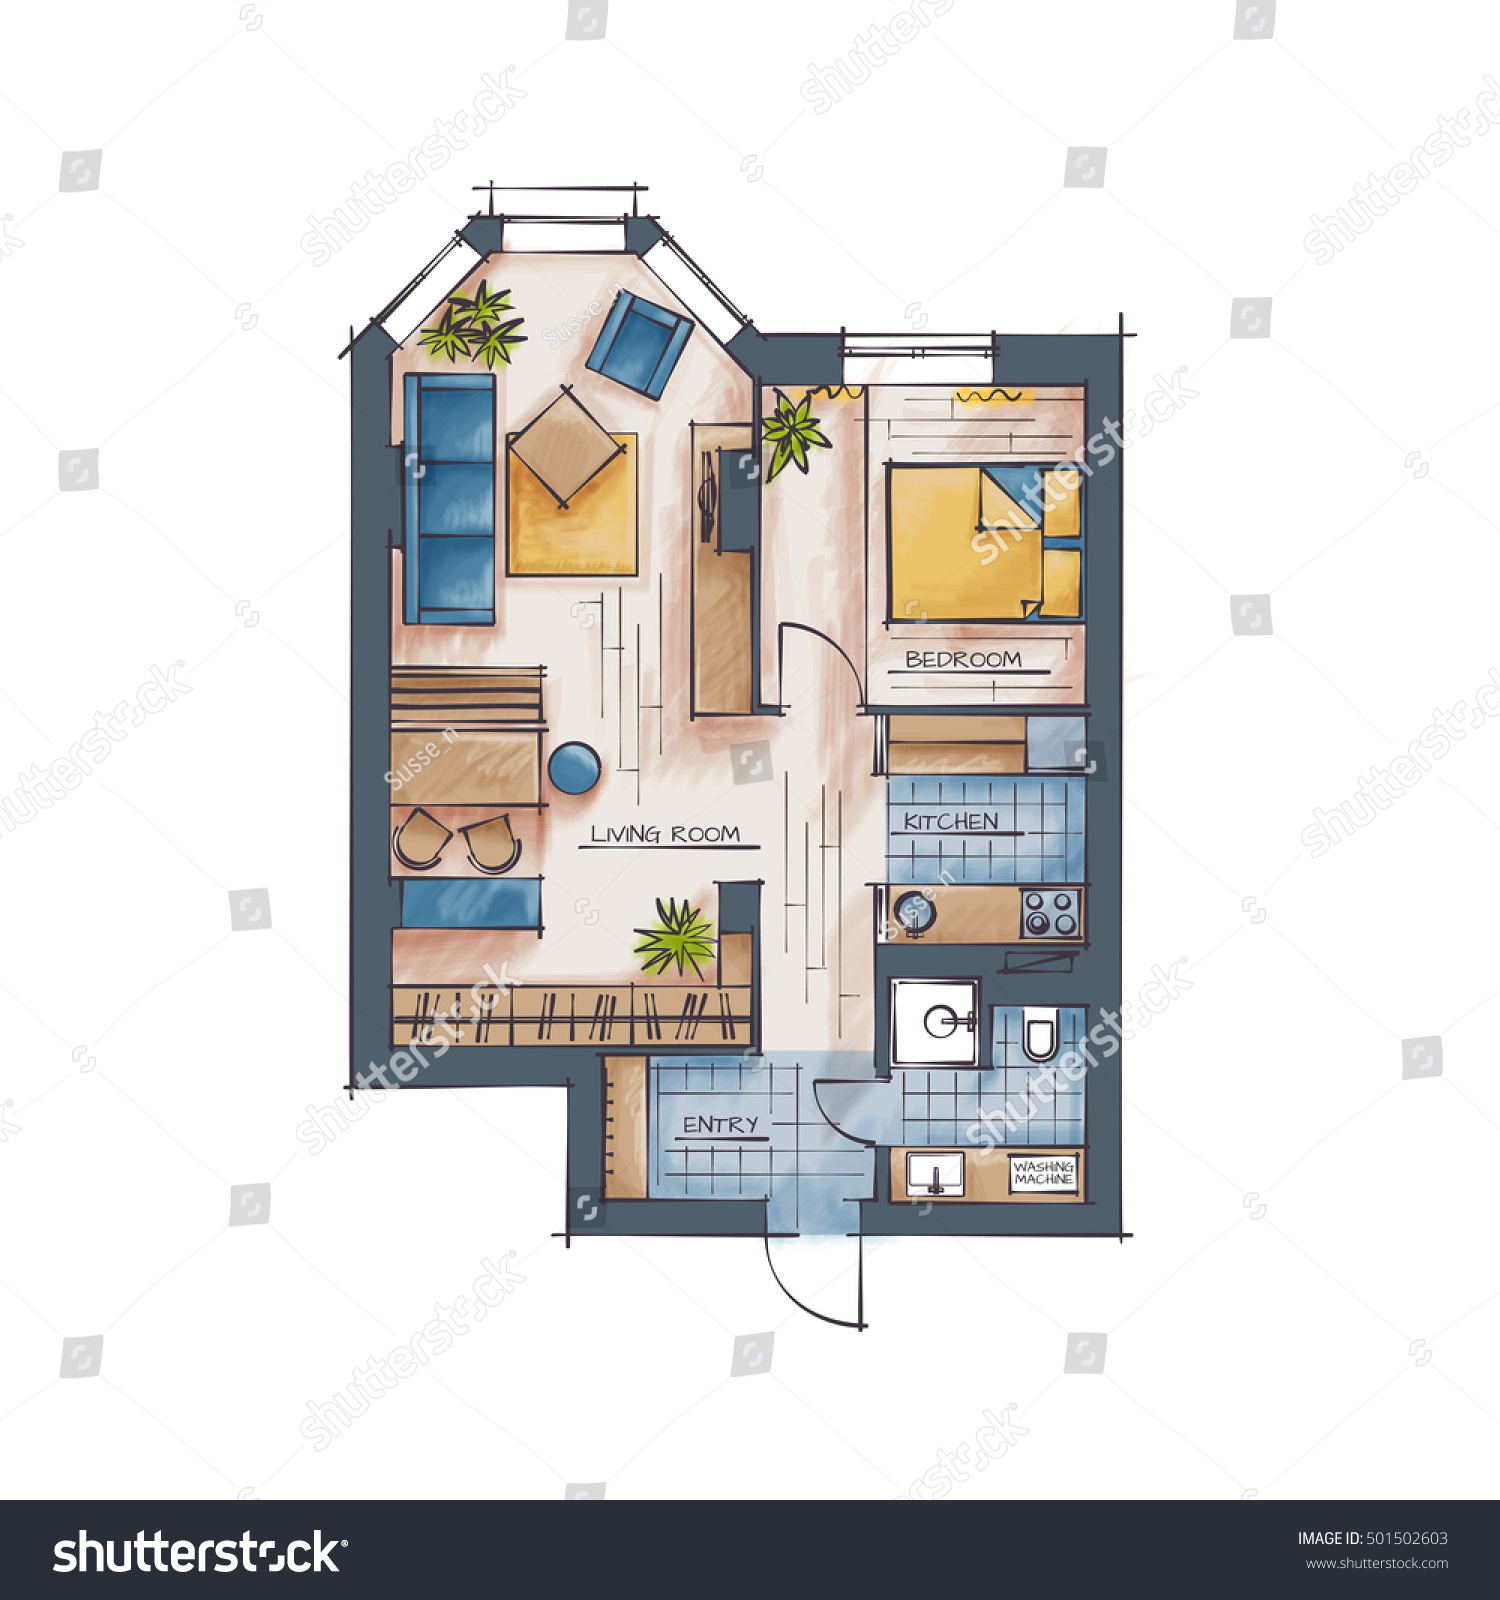 Bedroom drawing with color - Architectural Color Floor Plan One Bedroom Apartment Hand Drawn Style Rendering